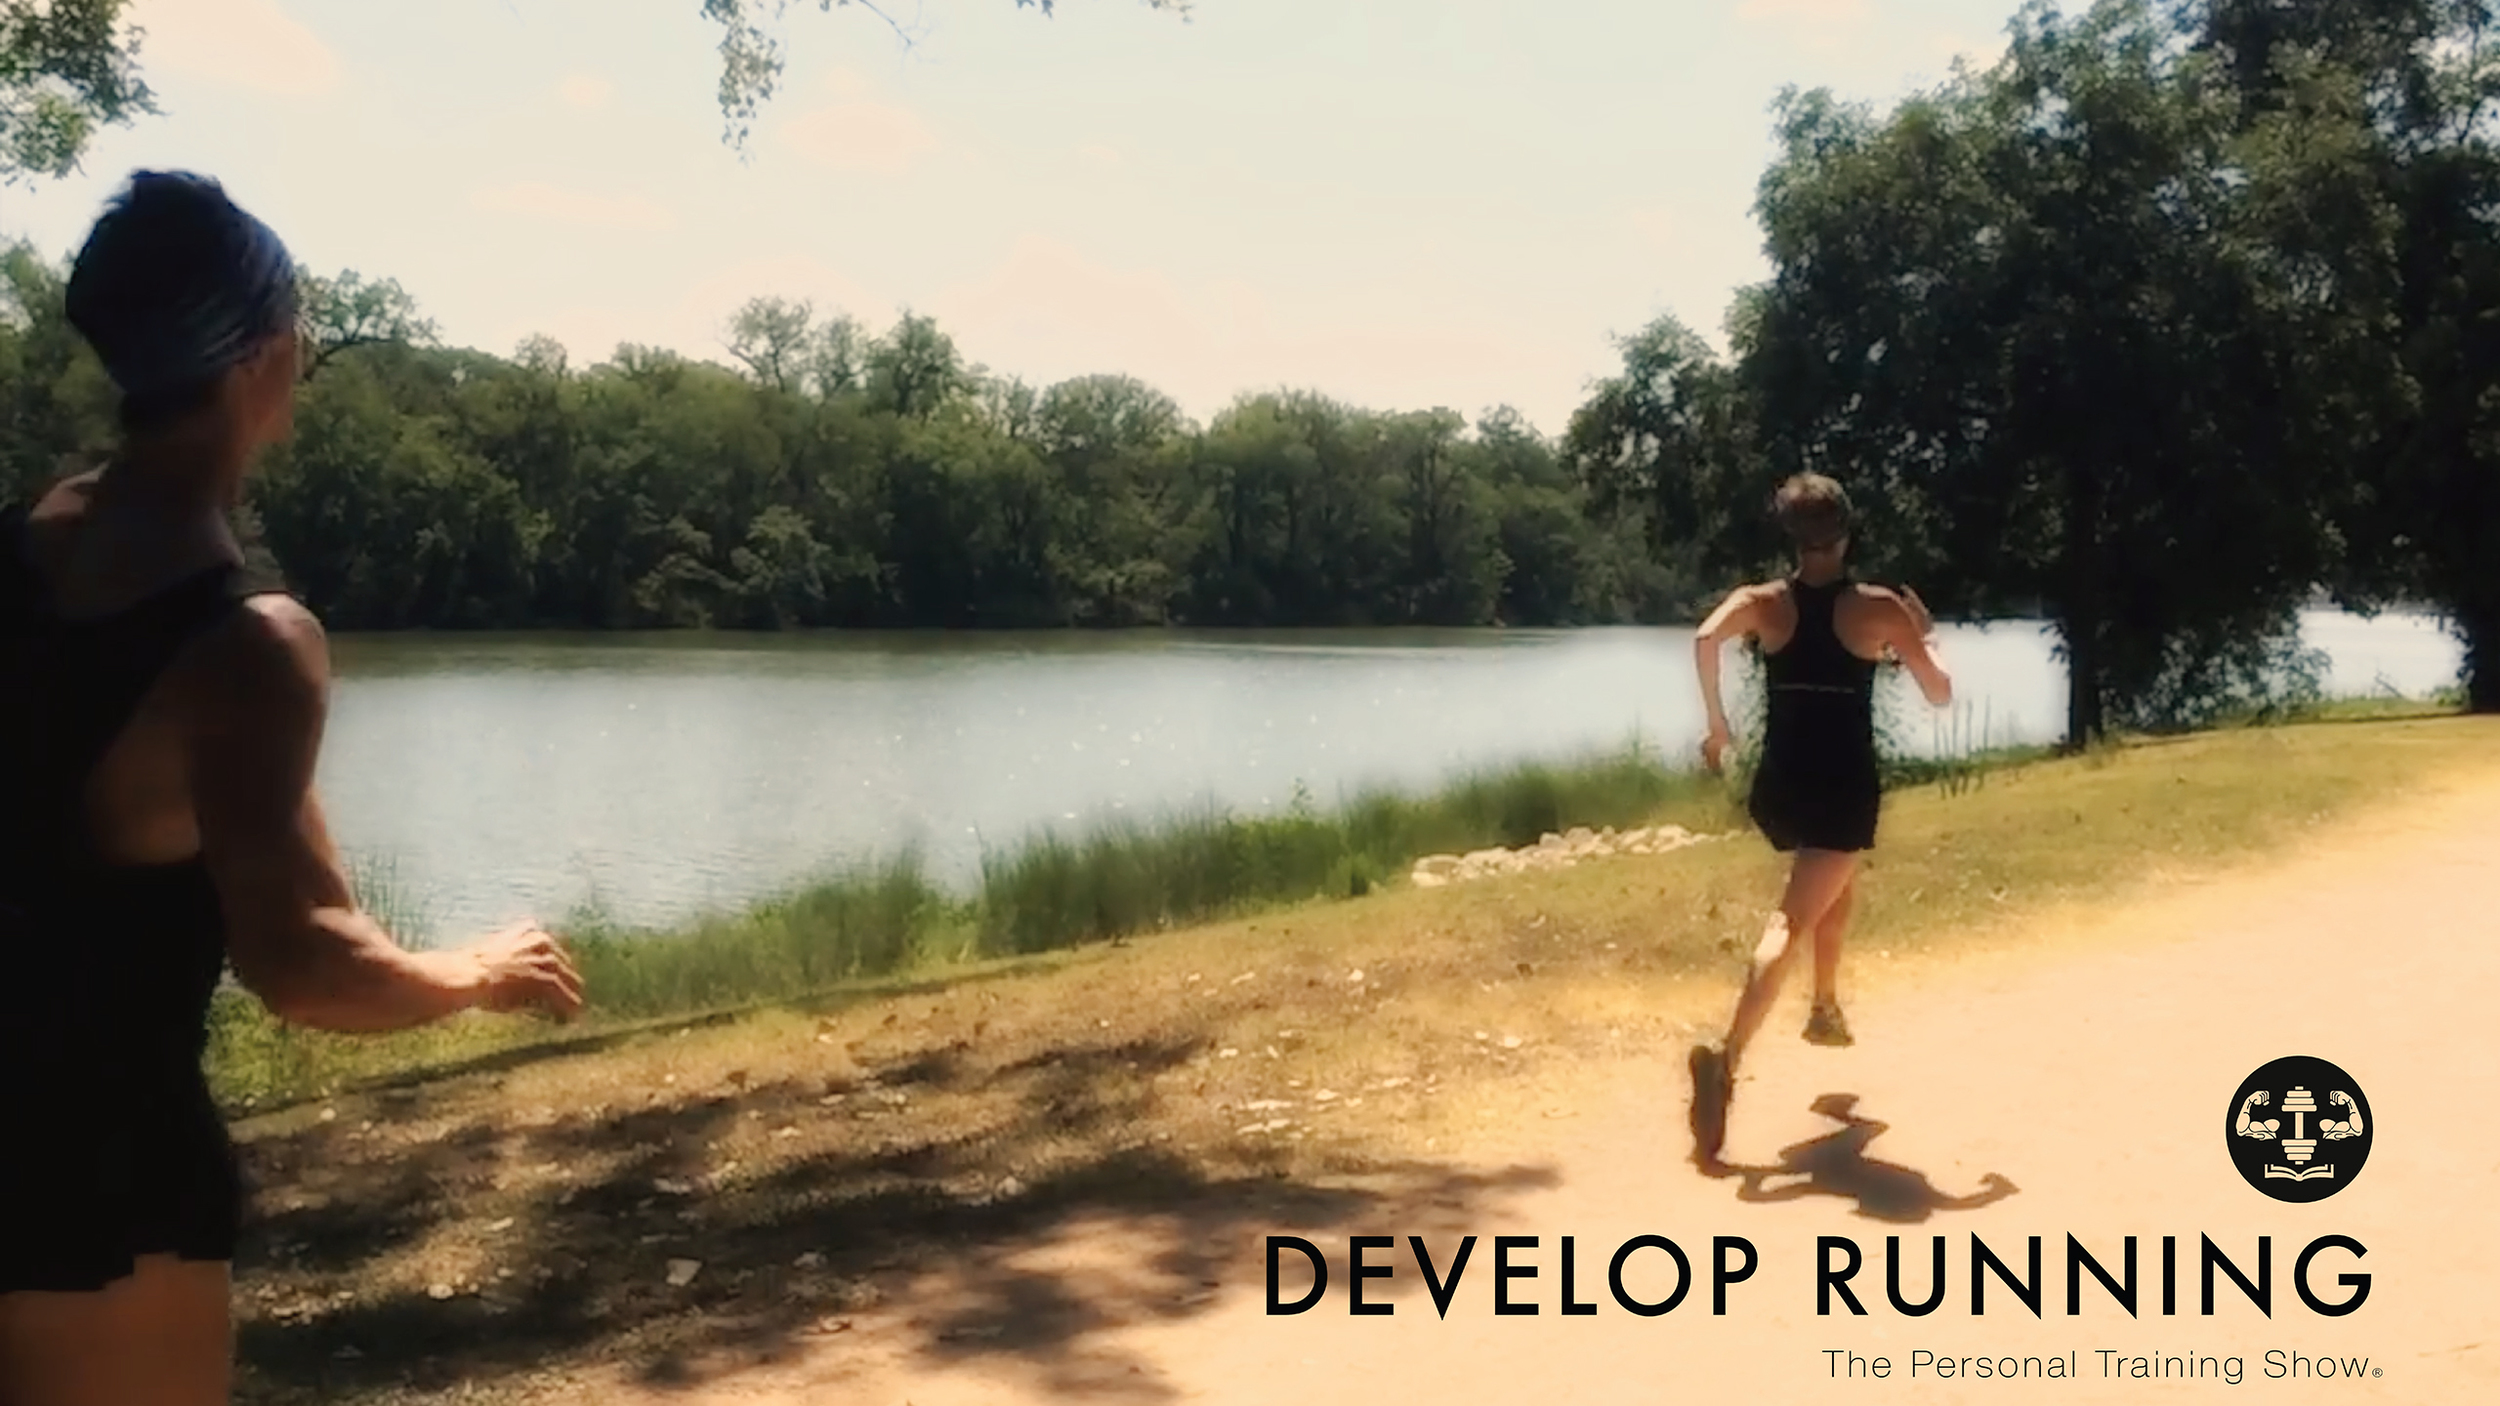 Develop Running